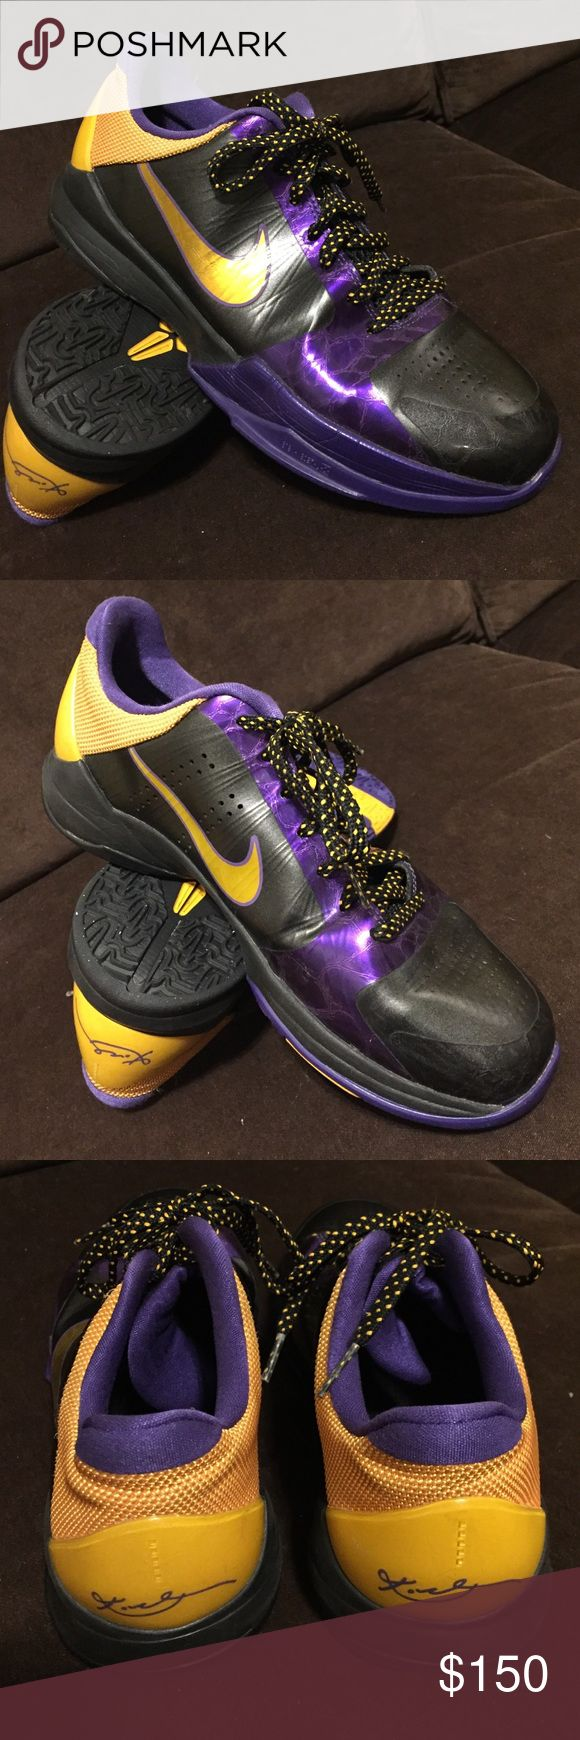 Mint Nike Kobe V away Lakers gold purple 8.5 40 EU Near deadstock condition marked 7Y which is women's 8.5 and 40 EUR. Original laces and insert. Collectible and hard to find. Nike Shoes Athletic Shoes